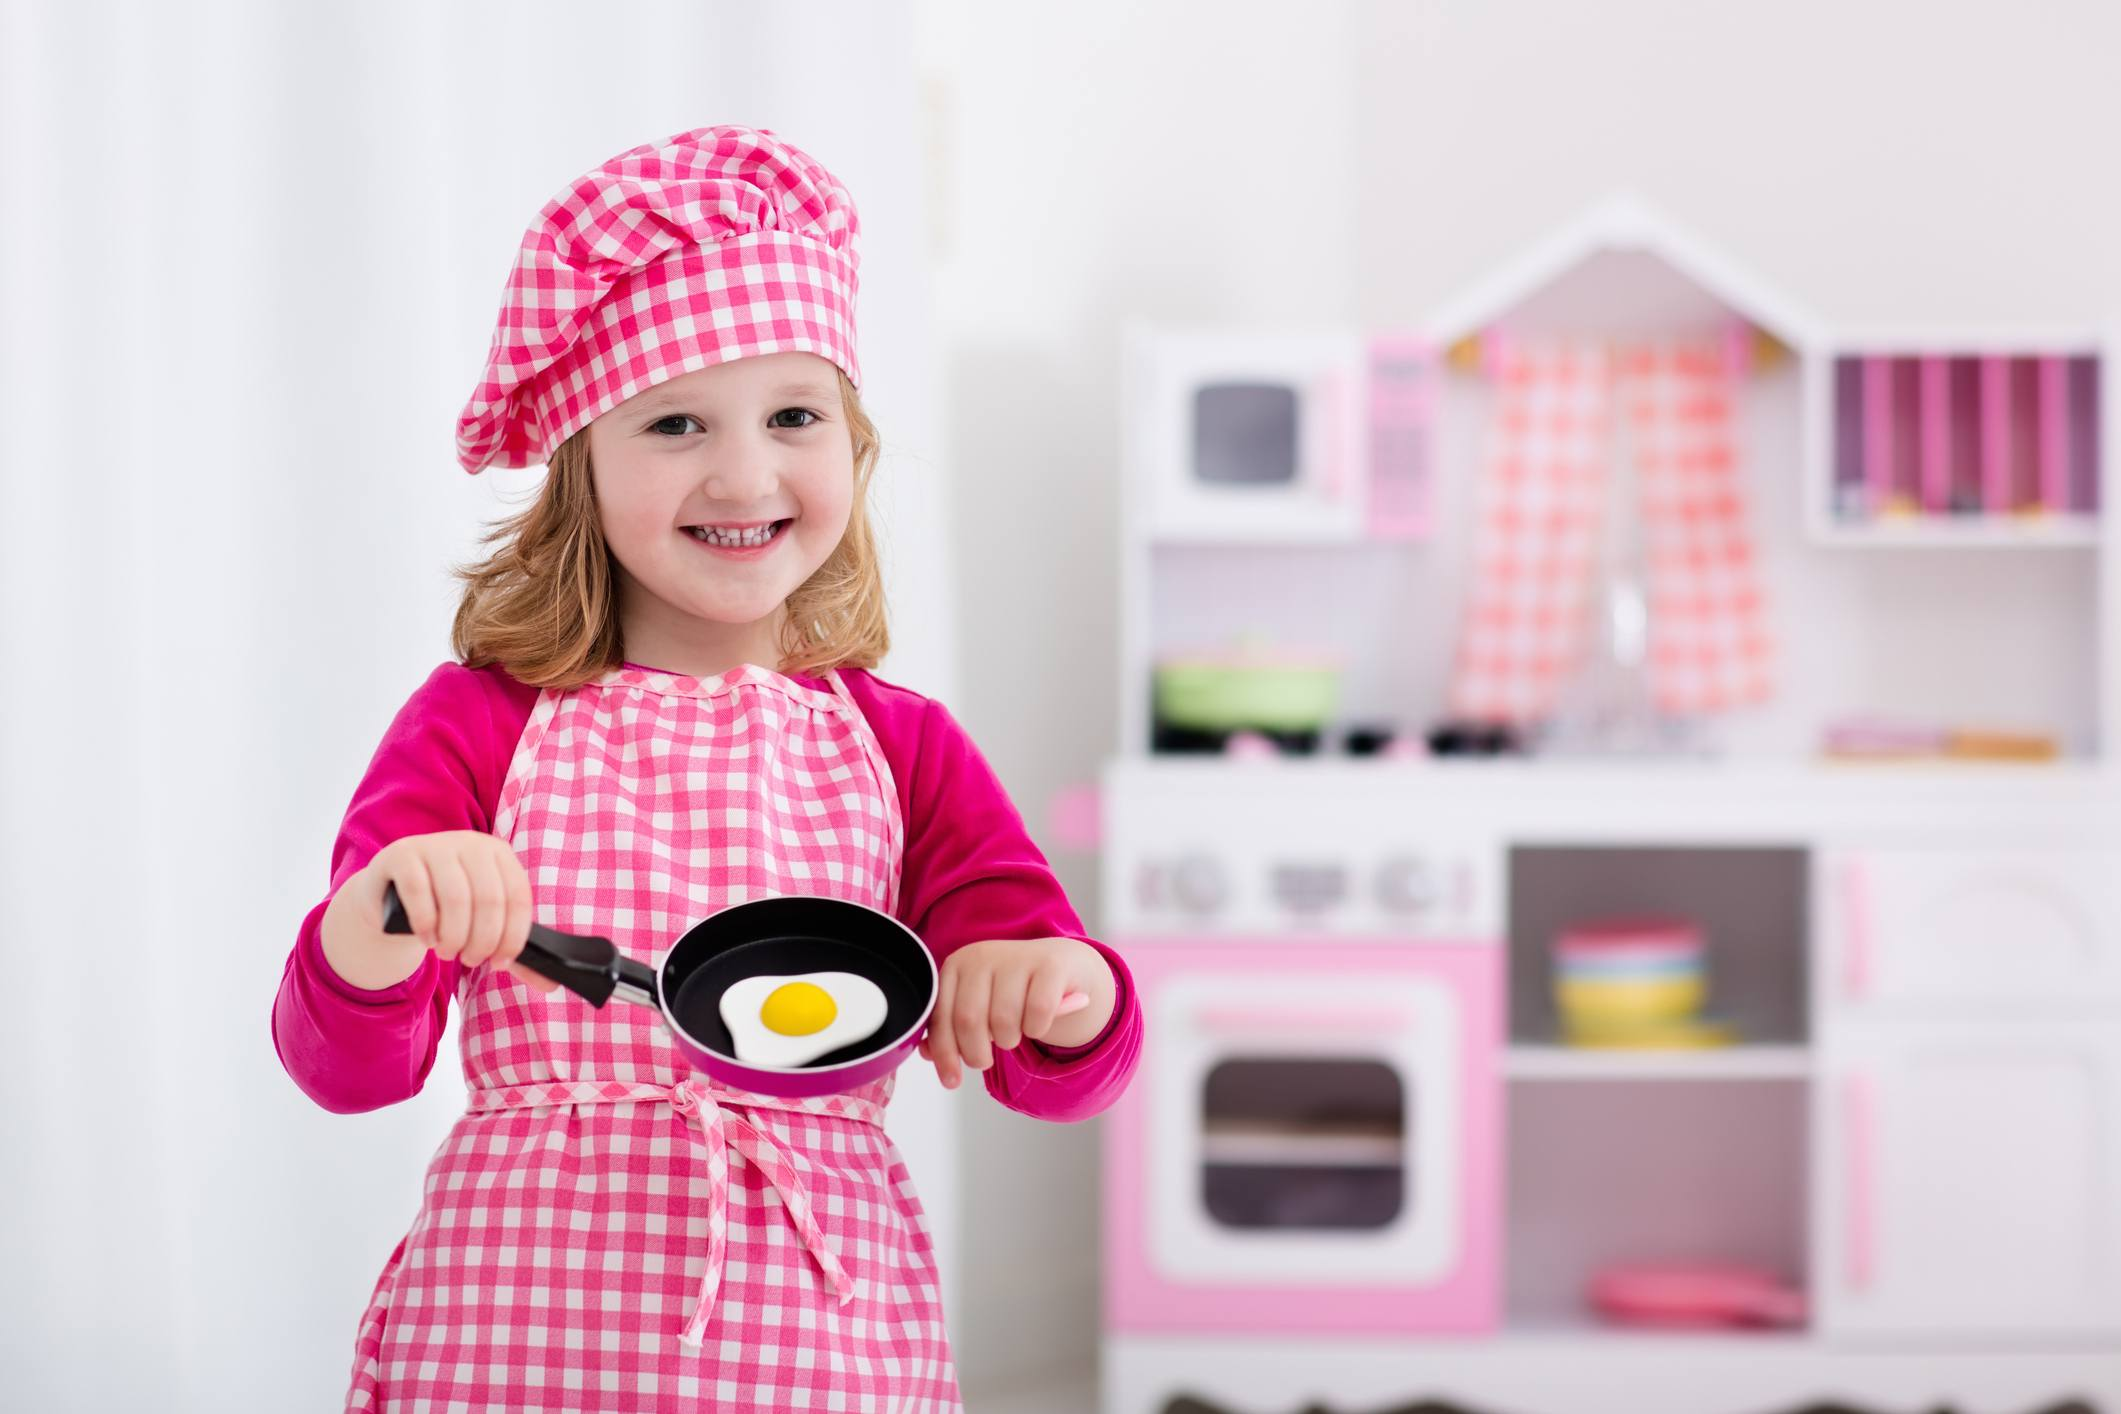 Cute little girl playing with toy kitchen